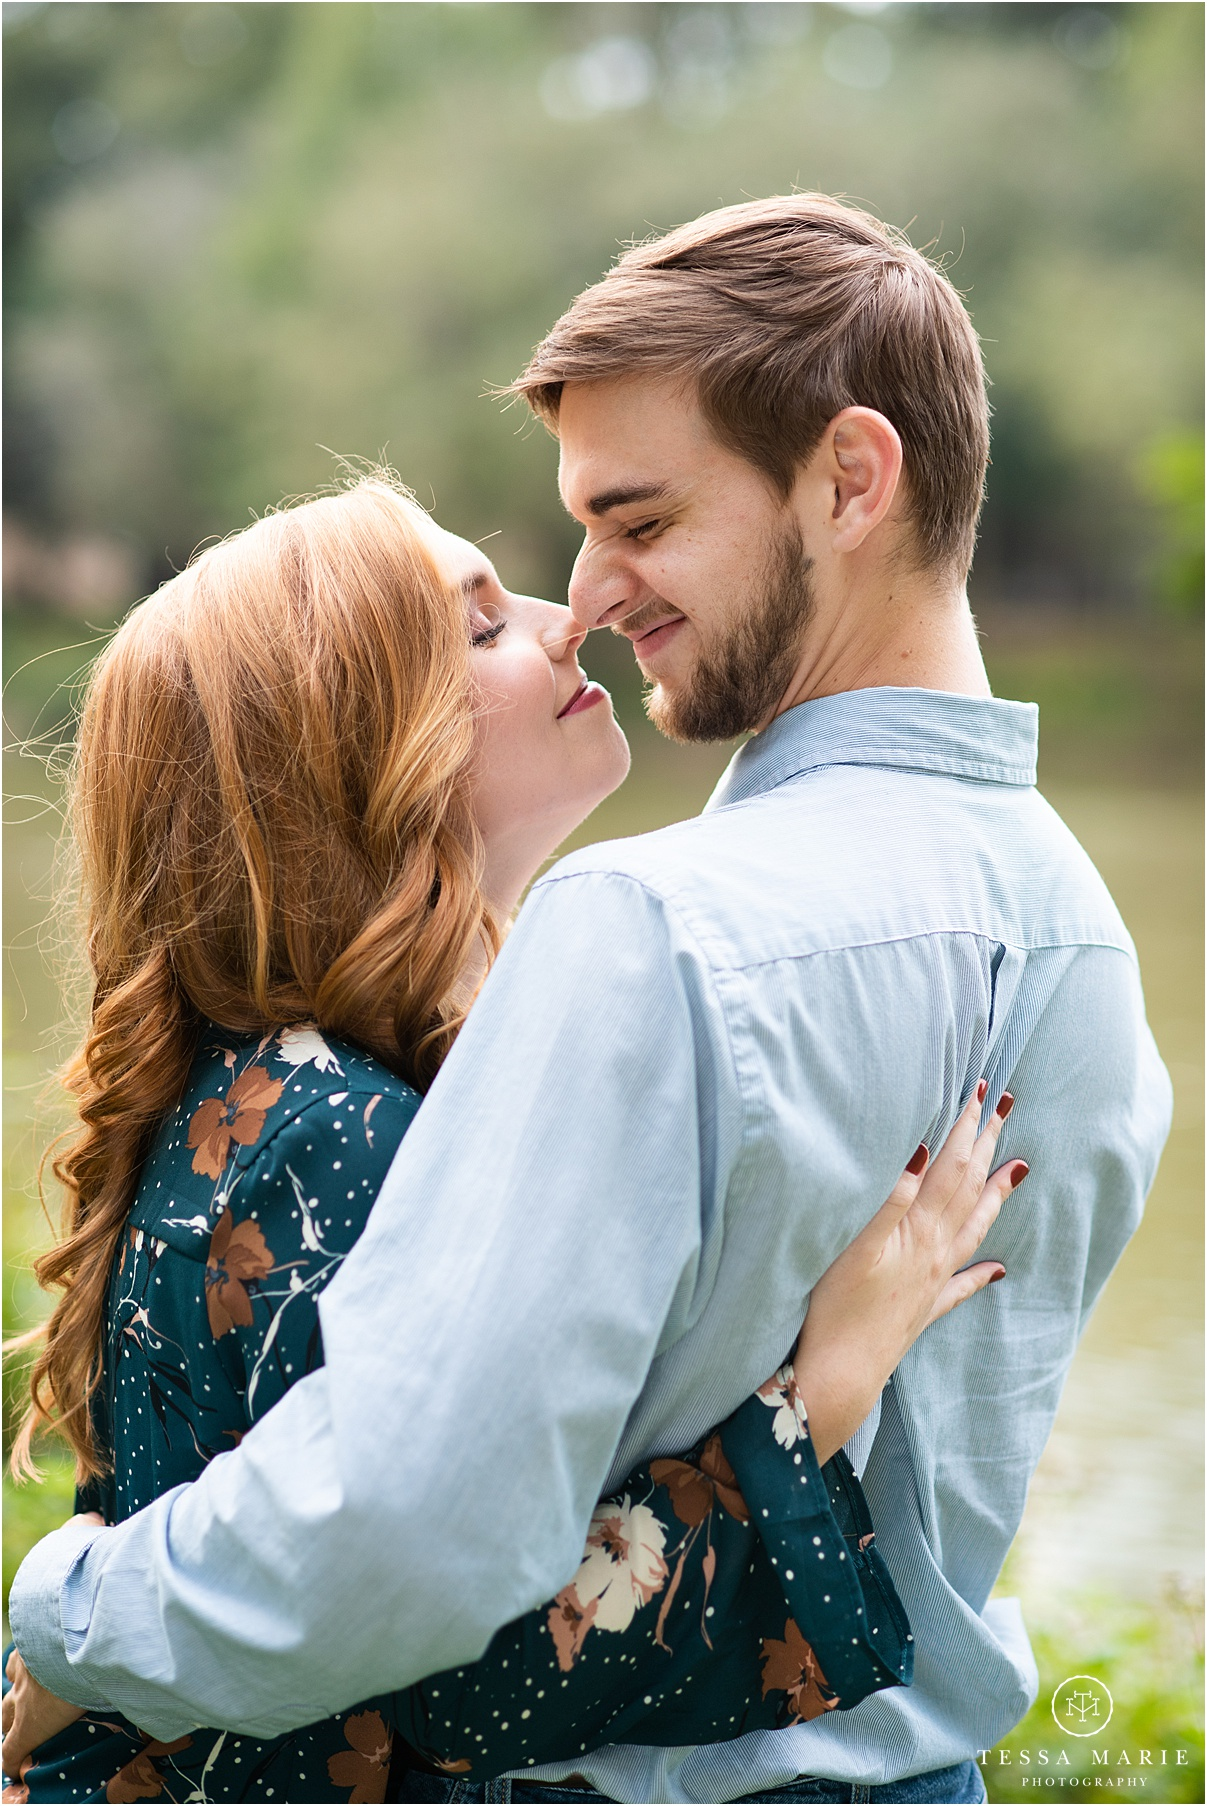 Tessa_marie_photography_wedding_photographer_engagement_pictures_river_engagement_0007.jpg